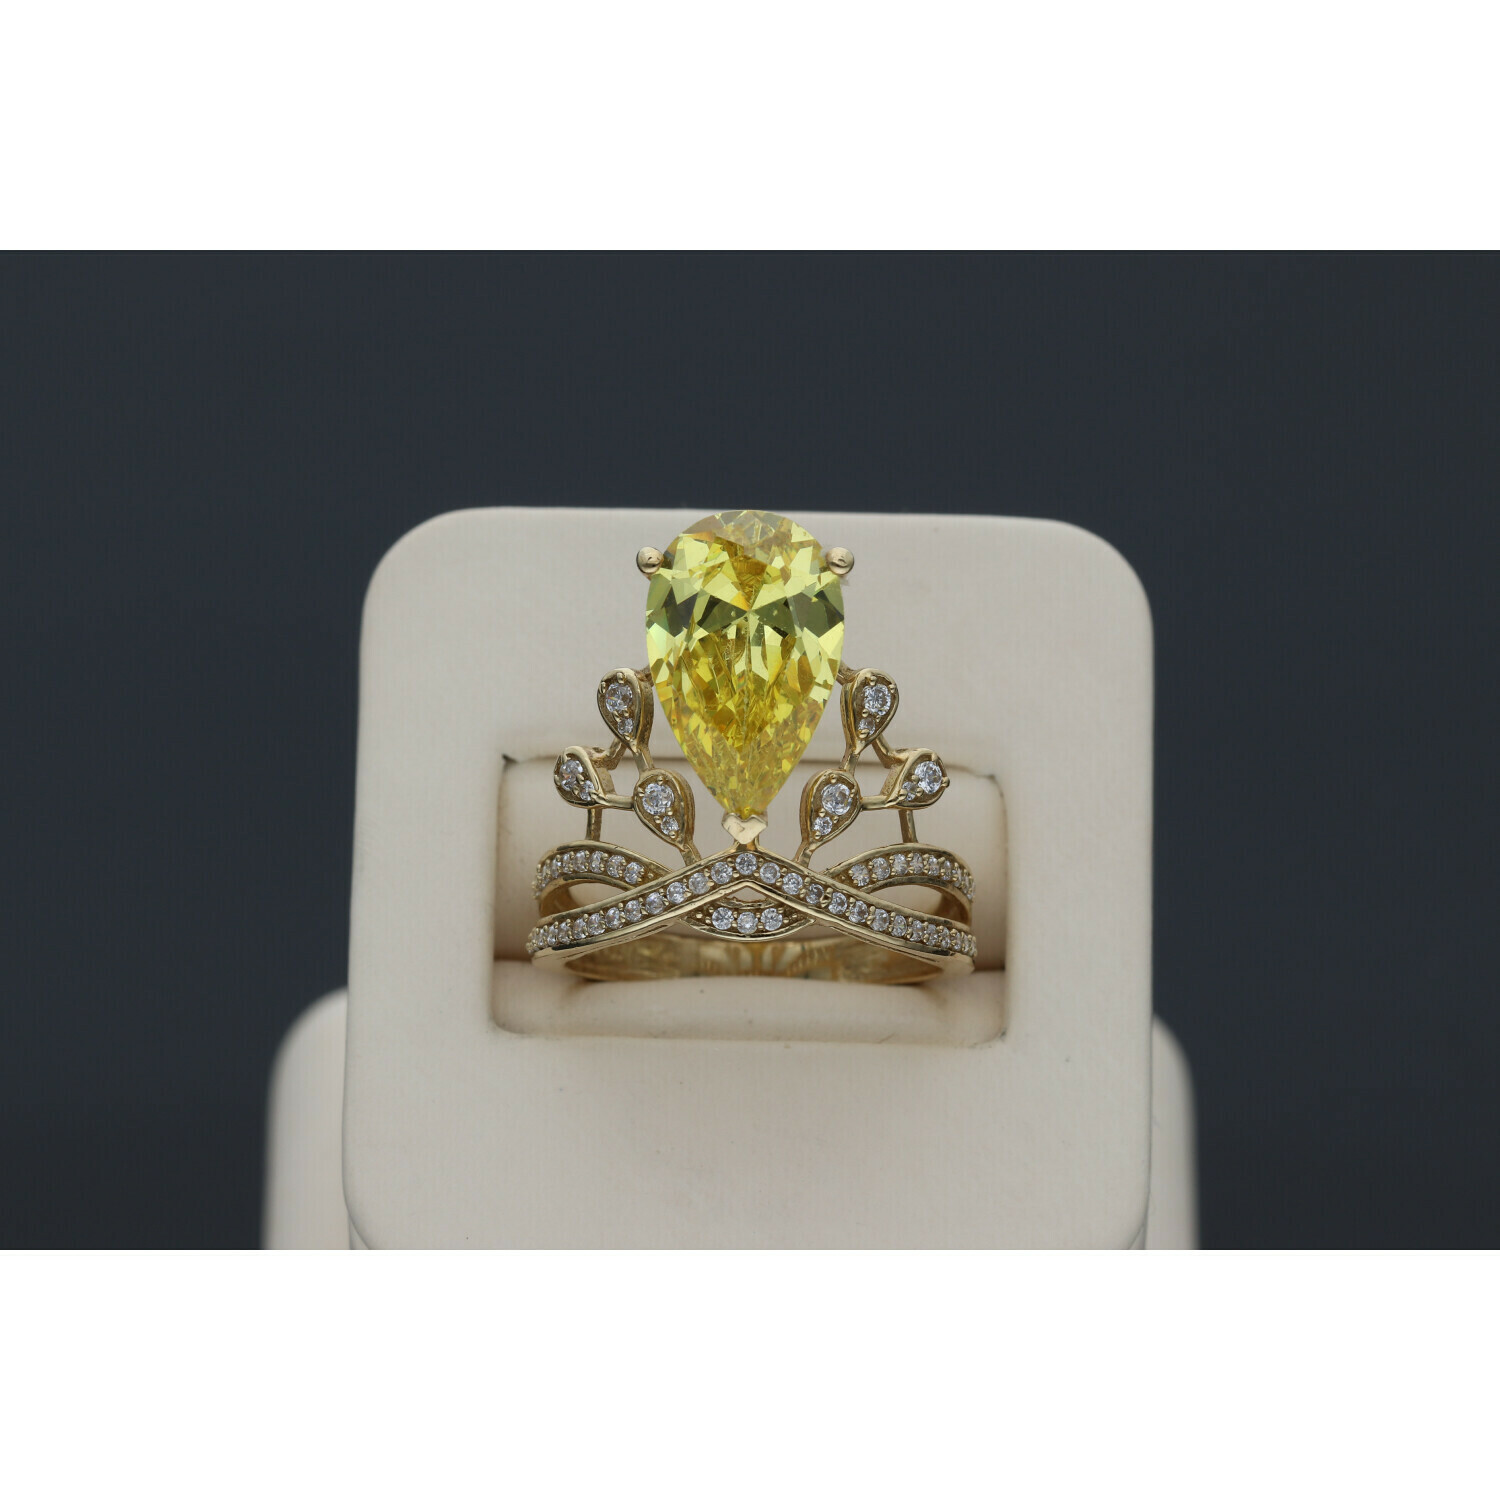 10 karat Gold & Zirconium yellow Gem Crown Ring